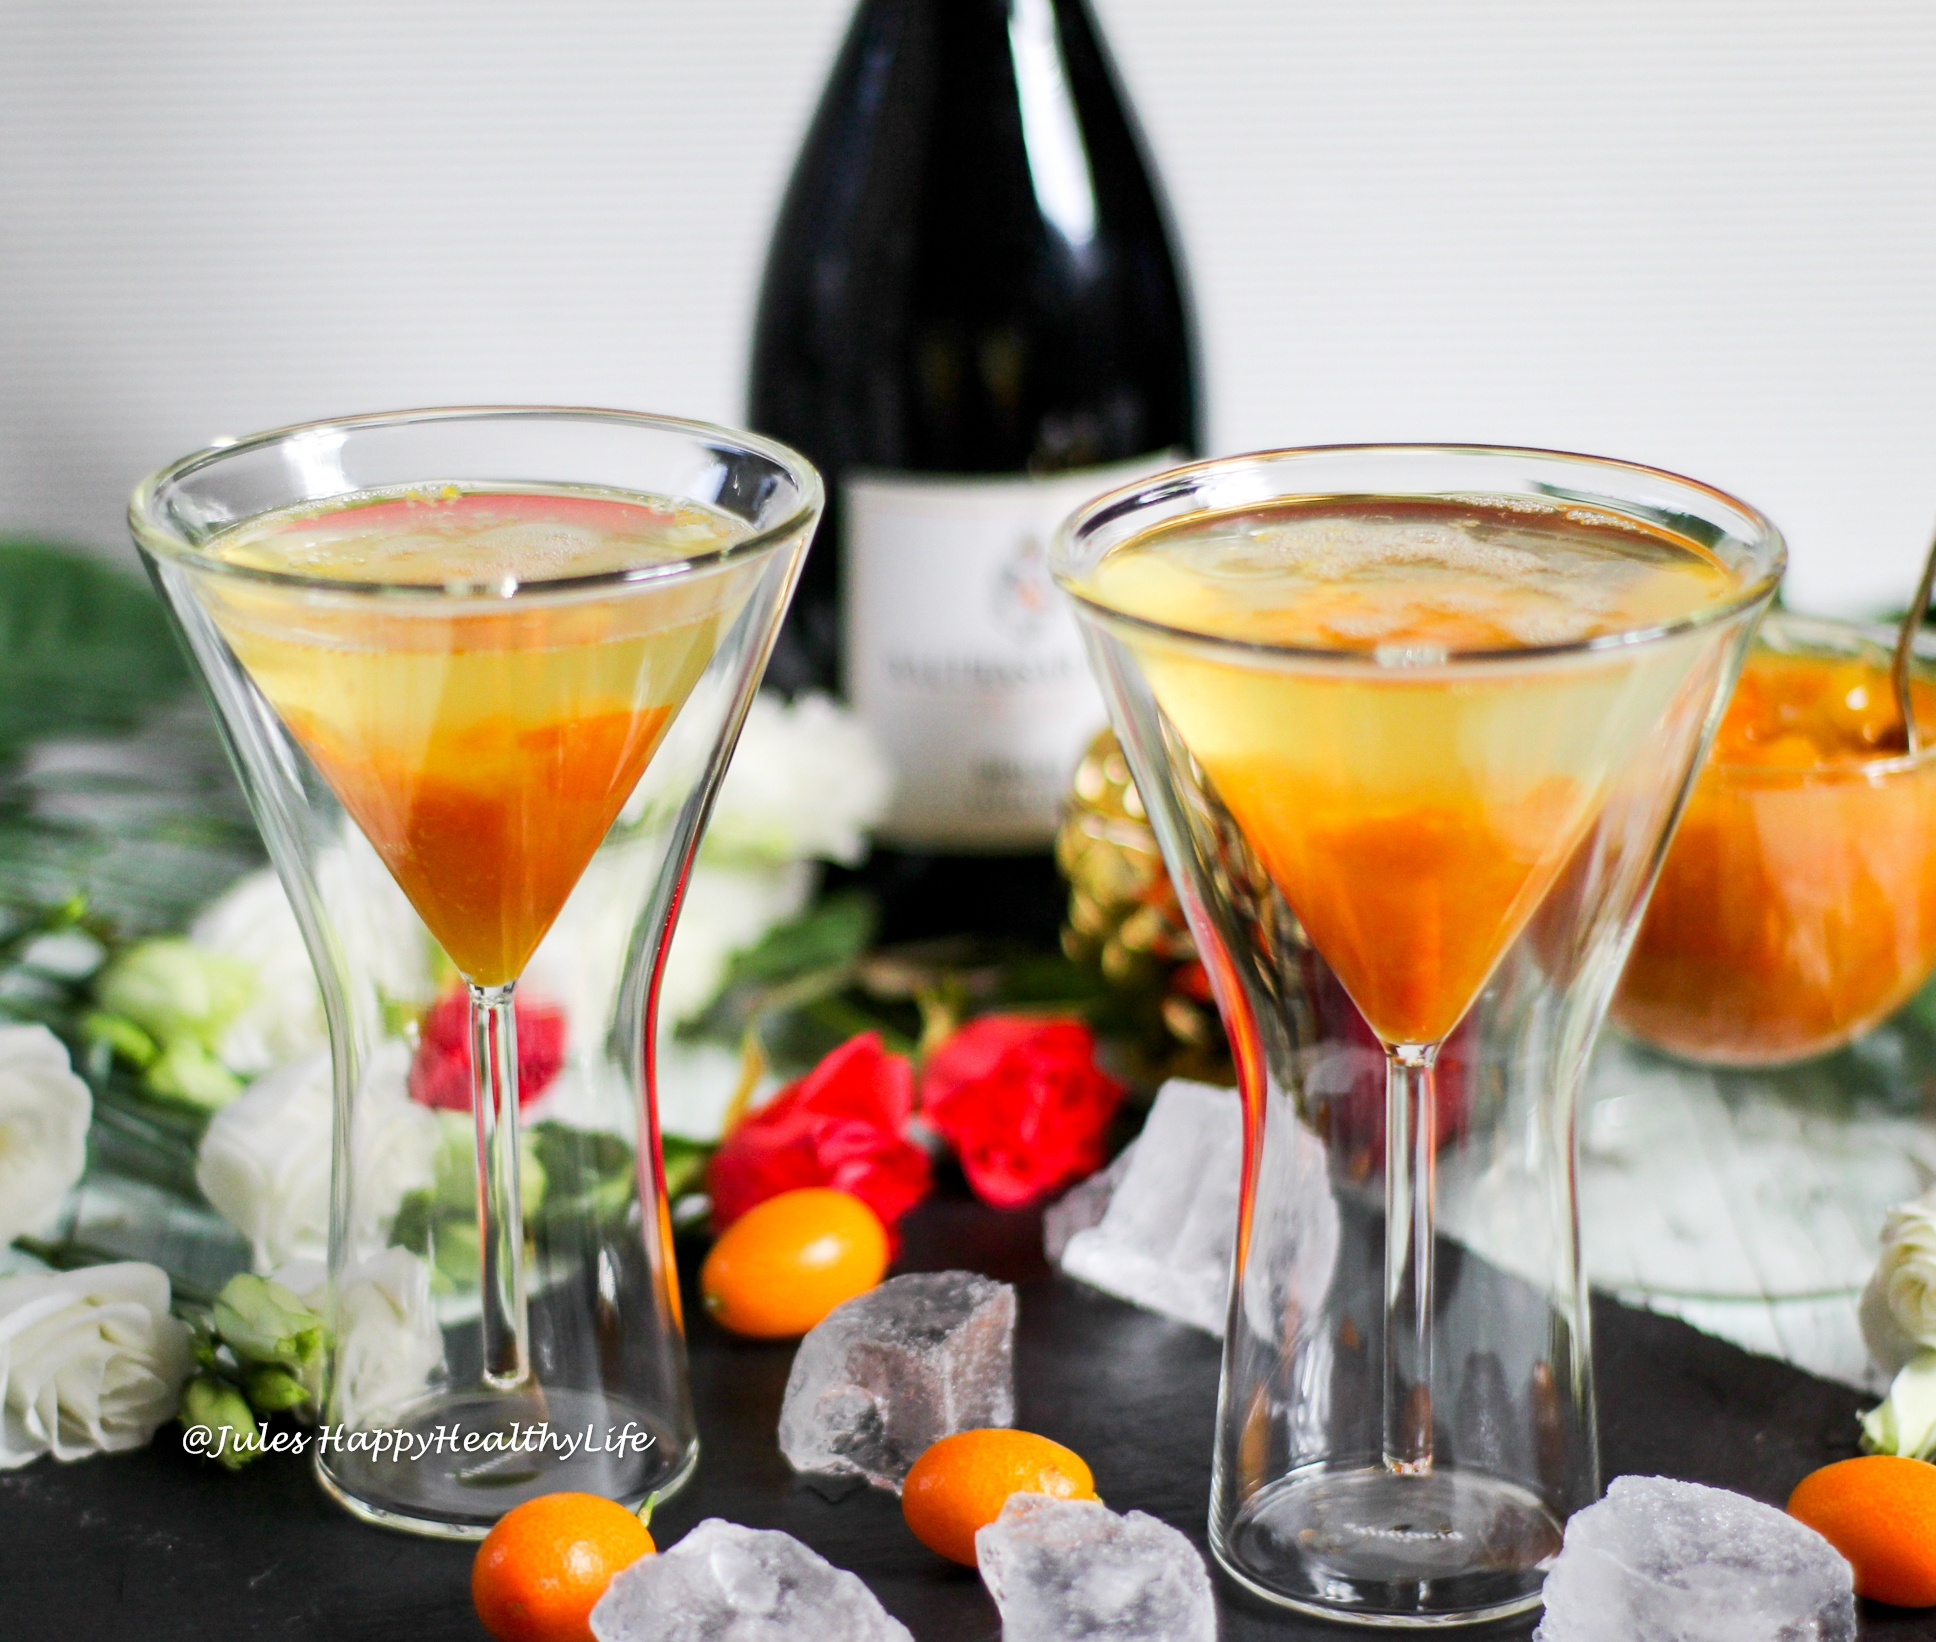 Delicious alcoholic aperitif for a romantic evening - Spiced Kumquats with Sparkling Wine